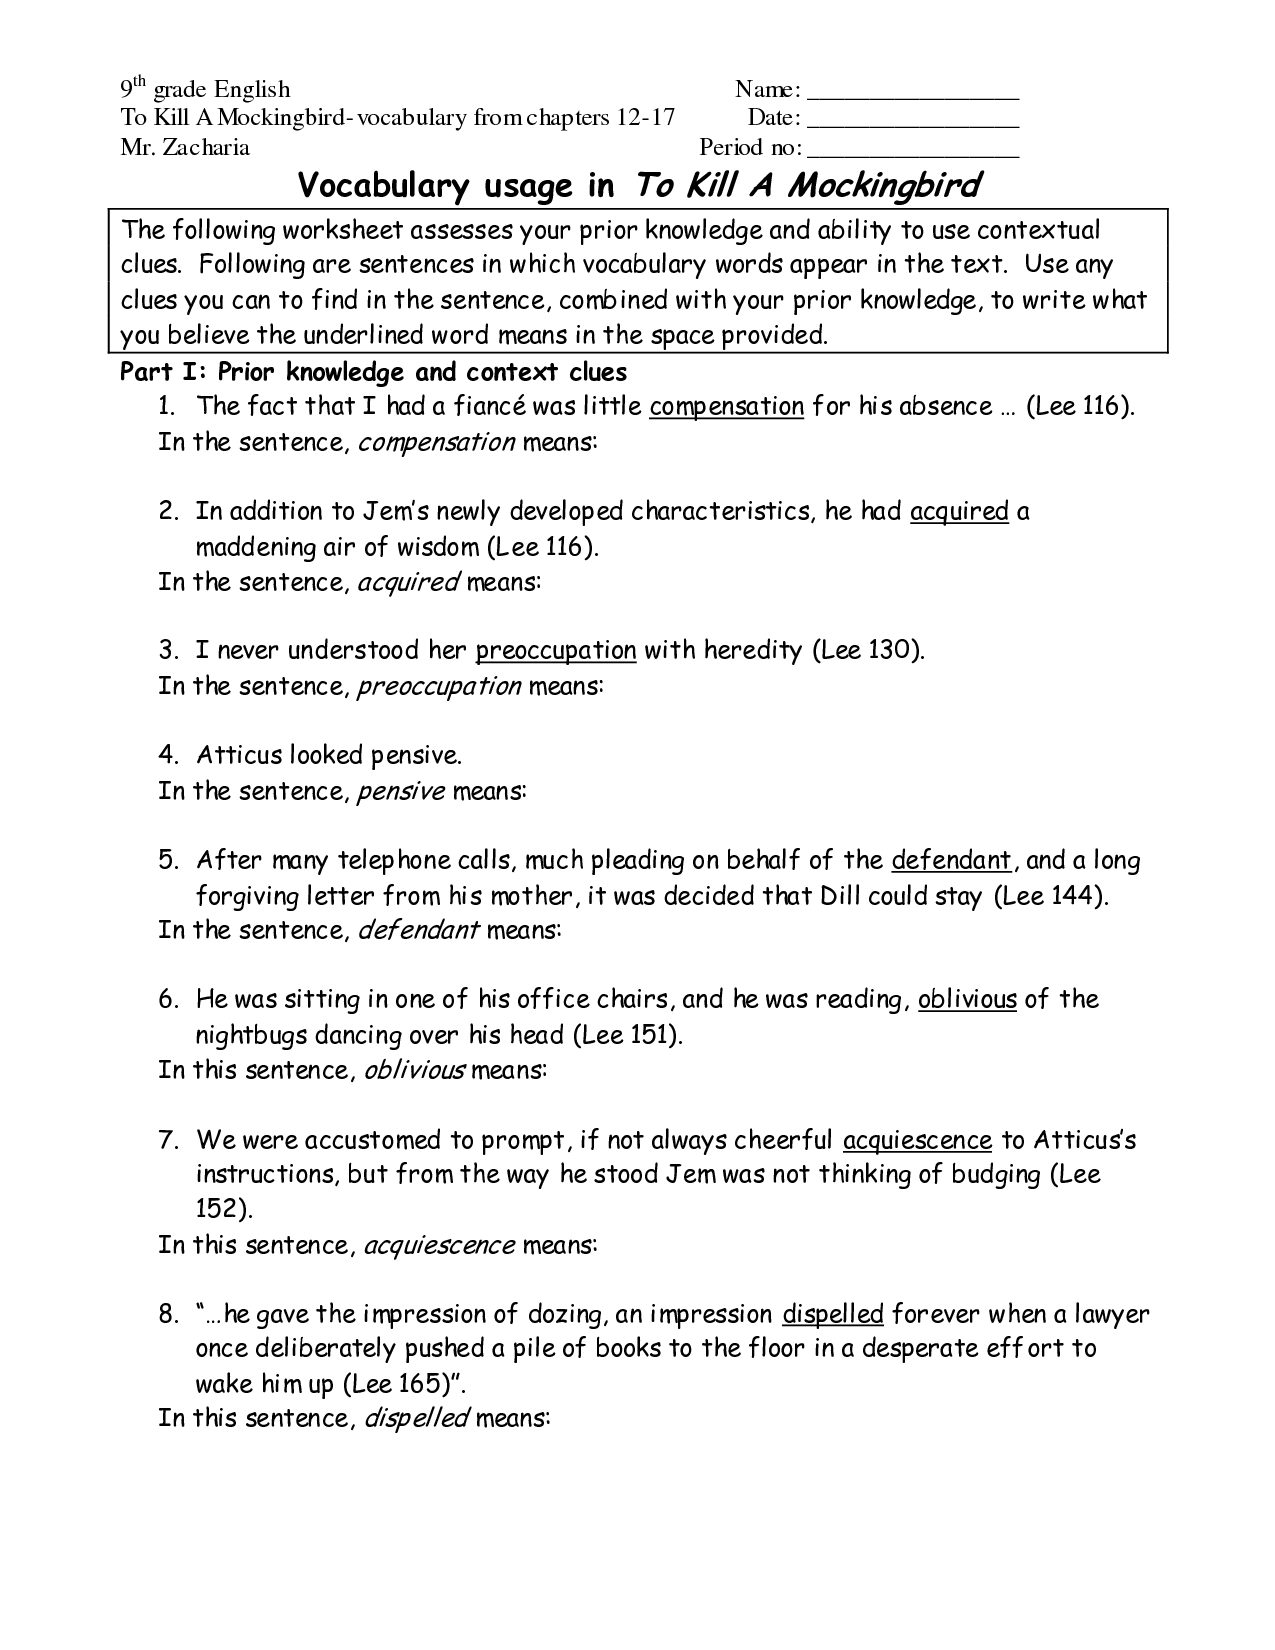 Worksheet Clues Reading Cobtext